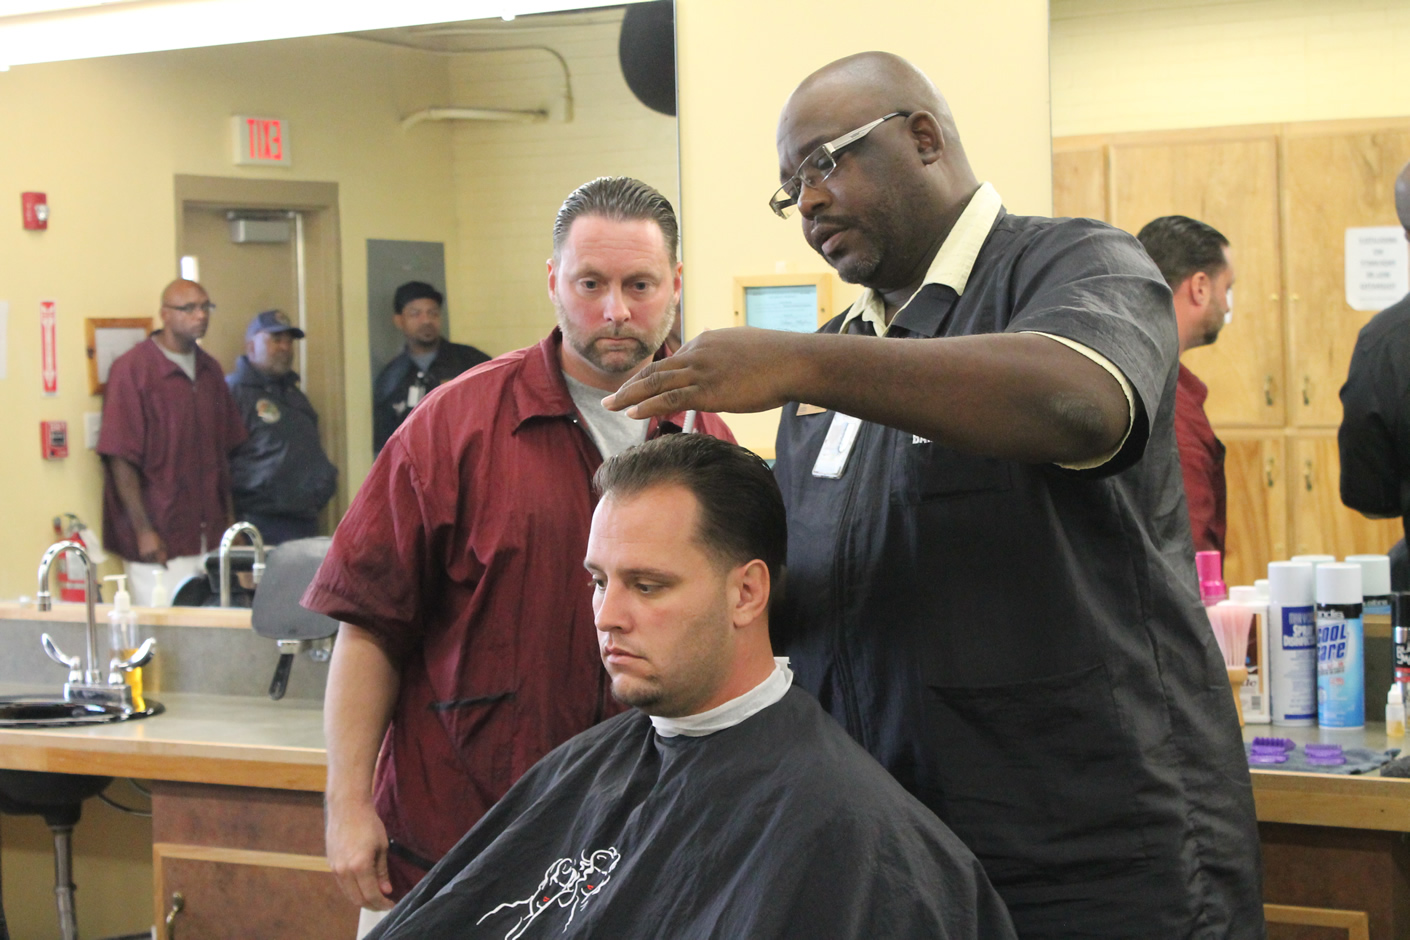 Read the full story, CCCC Barber Program Offers Inmates Fresh Start